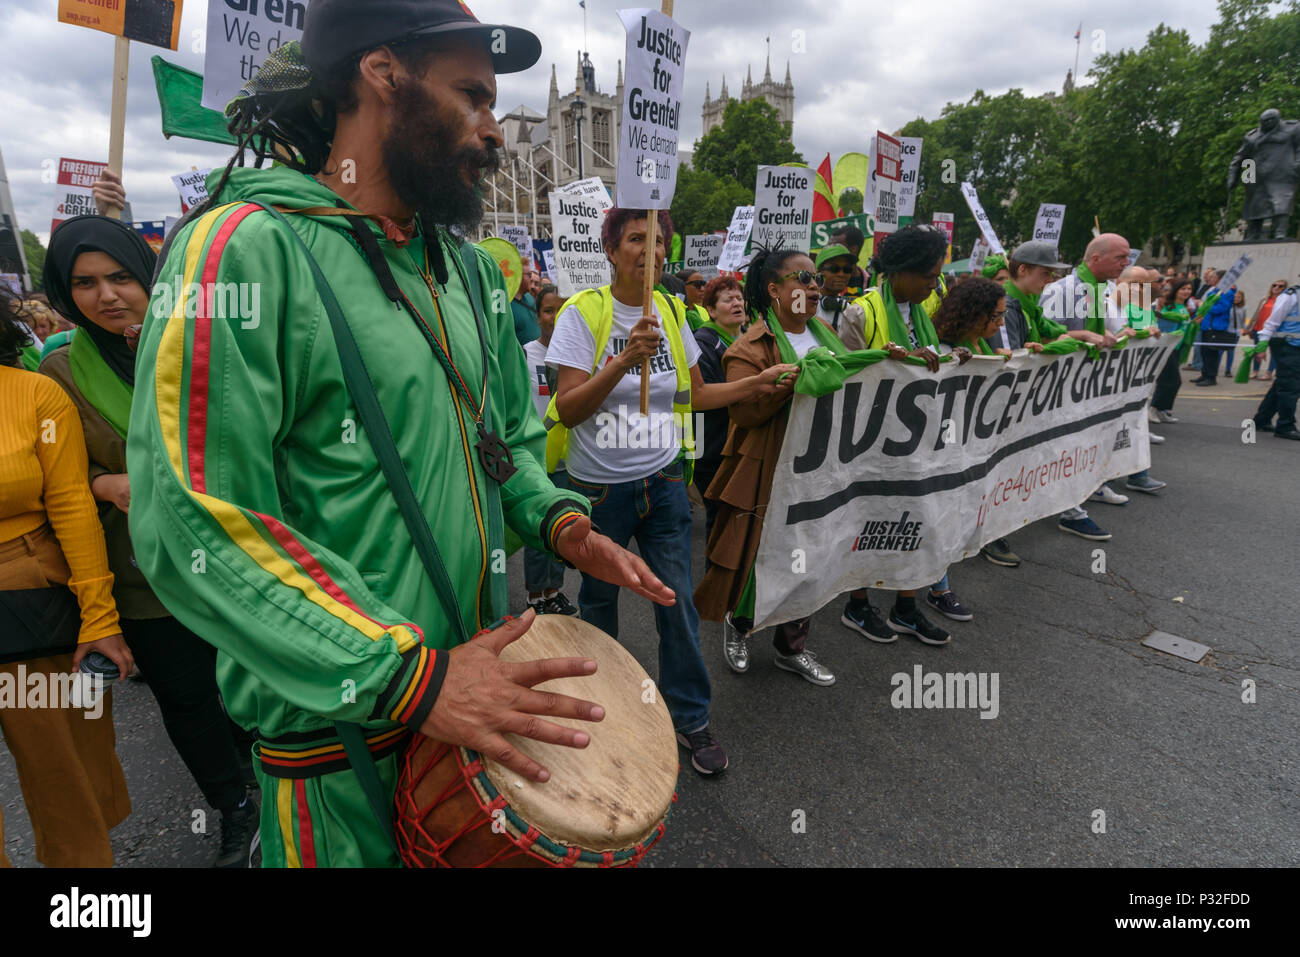 London, UK. 16th June 2018. Notting Hill community organiser Niles Hailstones drums in front of the march back from the Home Office to Downing St in solidarity with the 72 killed and the survivors of the Grenfell fire a year ago at a protest organised by Justice4Grenfell and the FBU (Fire Brigades Union.) After some speeches they marched to the Home Office for a brief protest before returning to Downing St for more speeches. Speakers complained of the many promises made by Theresa May which have been broken, despite her promise all survivors would be rehoused in 3 weeks, a year later 50% of su - Stock Image